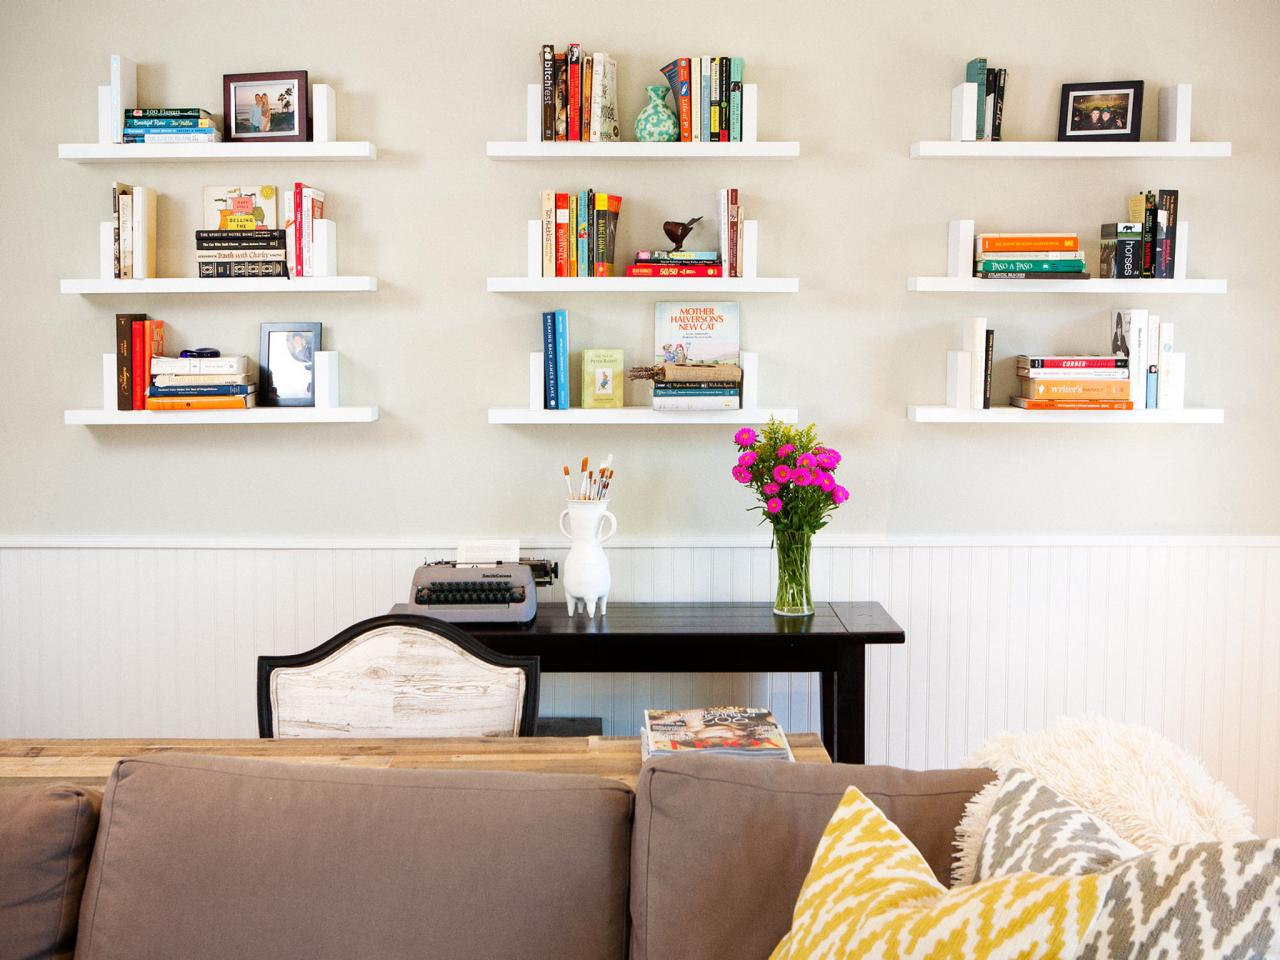 Amazing 12 Ways To Decorate With Floating Shelves | Hgtv's Decorating intended for Fresh Living Room Shelving